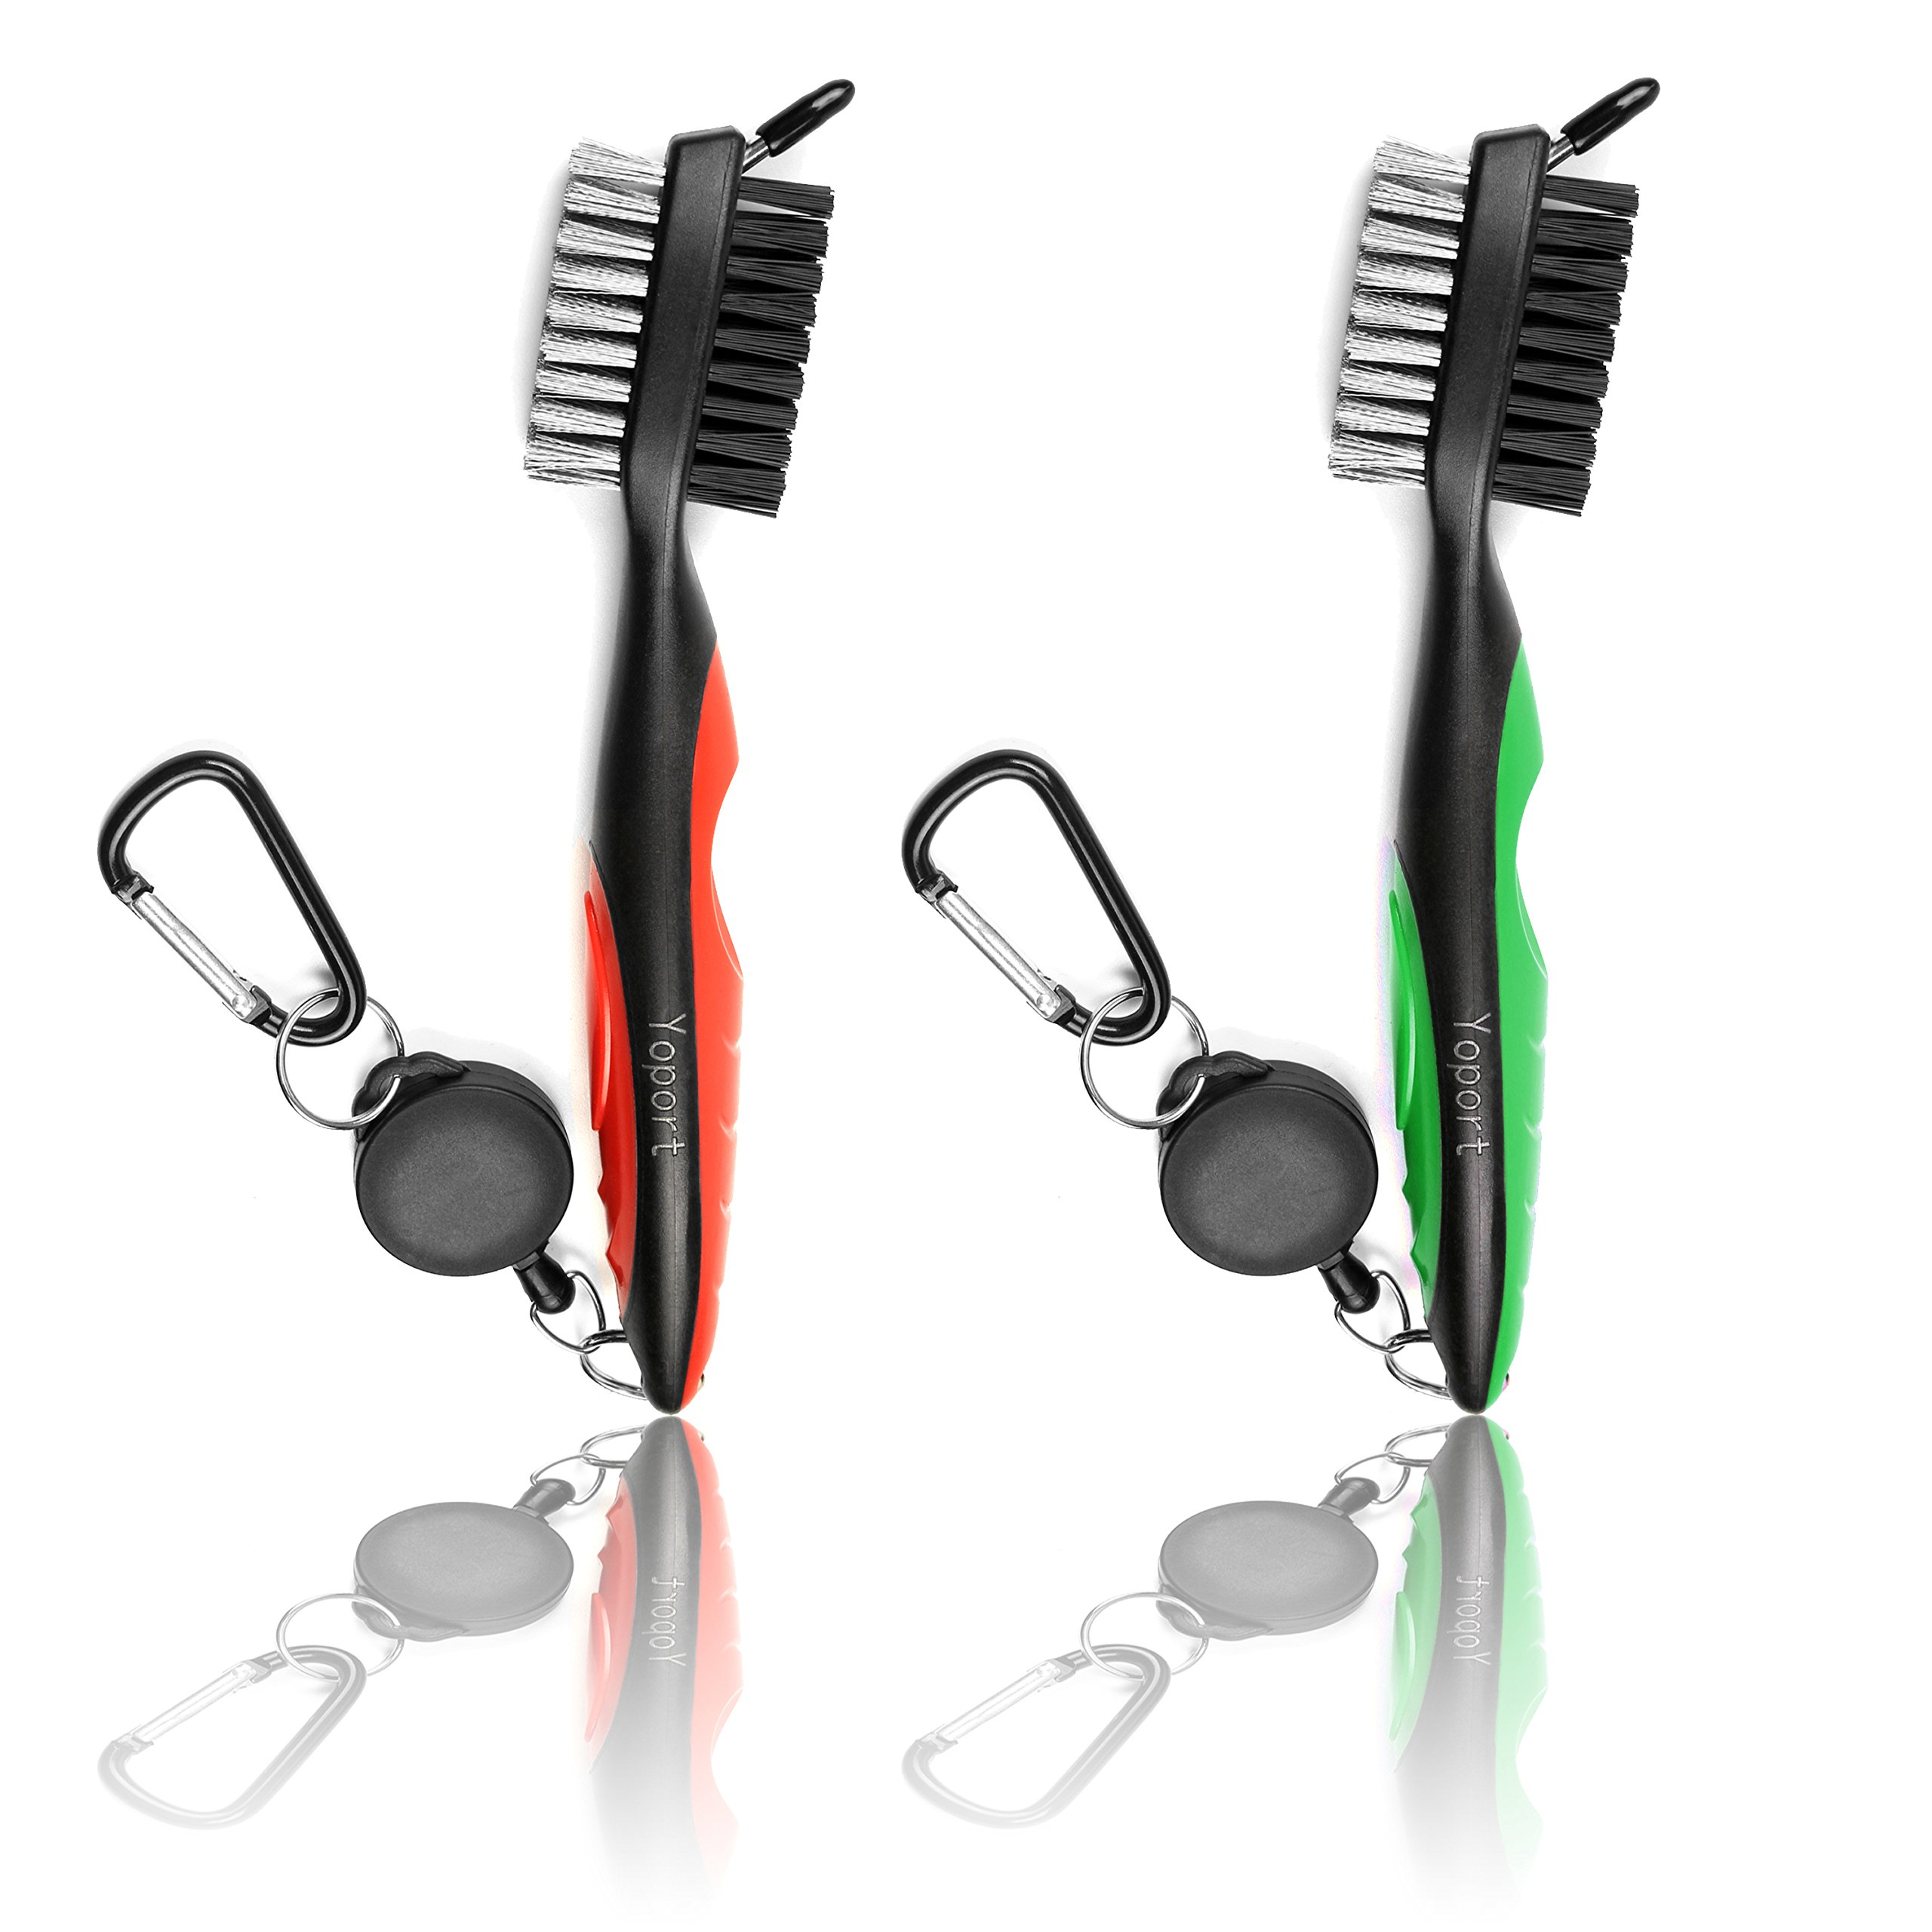 Yoport Two Pack Golf Club Brush and Club Groove Cleaner 2 Ft Retractable Zip-line Aluminum Carabiner, Lightweight and Stylish, Ergonomic Design, Easily Attaches to Golf Bag (red+Green) by Yoport (Image #1)